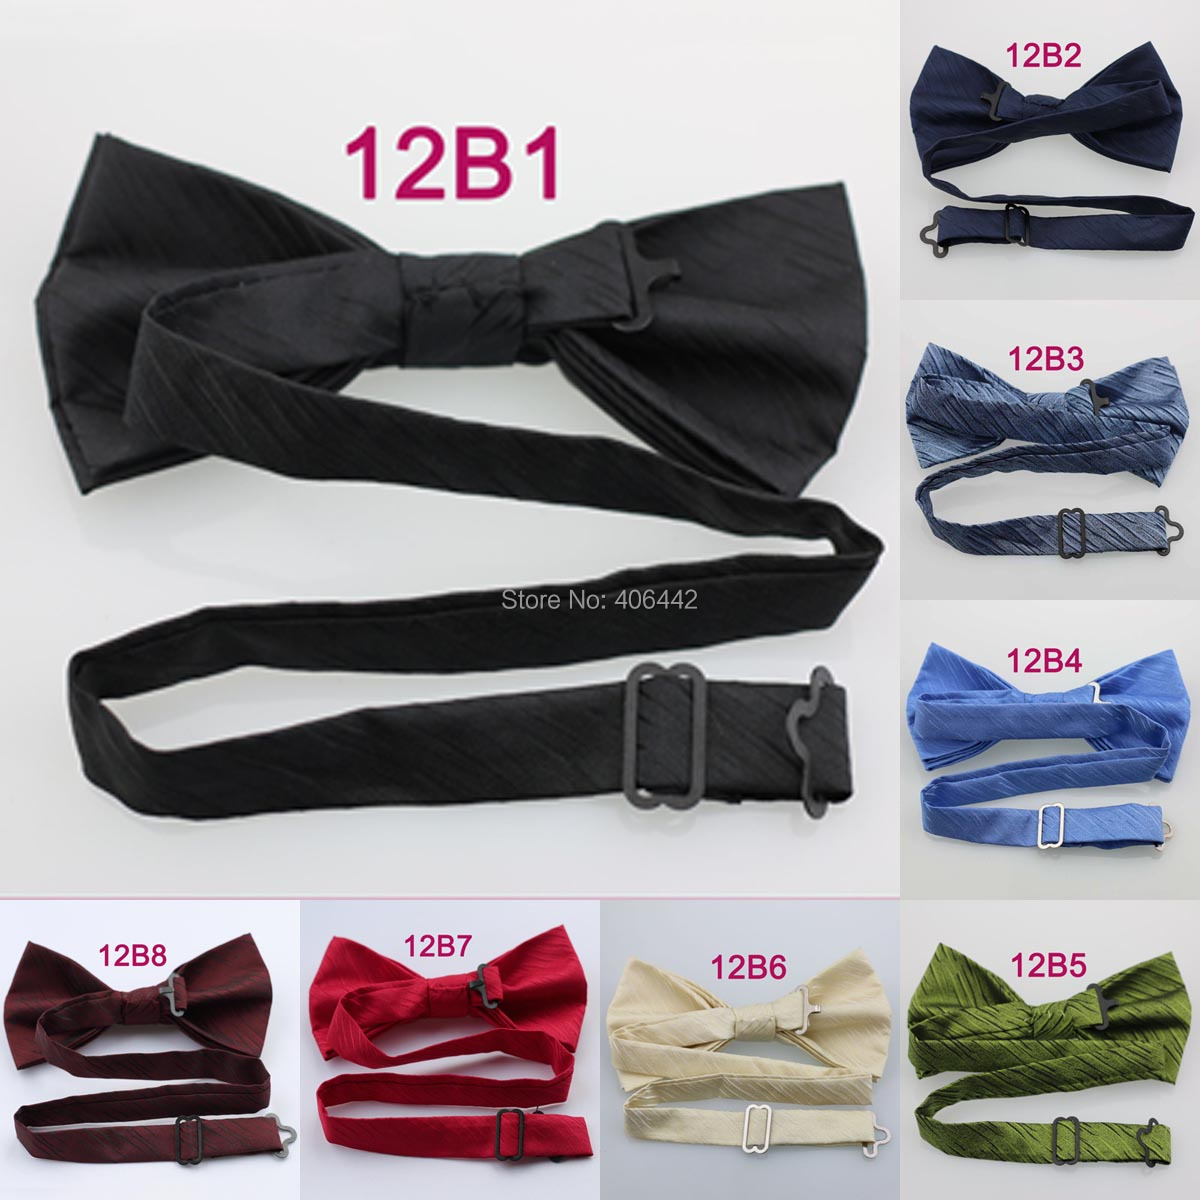 YIBEI Coachella Ties Jacquard Woven Burgundy Bowtie With Black Stripes Bow  Ties Tuxedo Double deck Adjustable Adults Butterfly-in Men s Ties    Handkerchiefs ... 4982c3af11f6